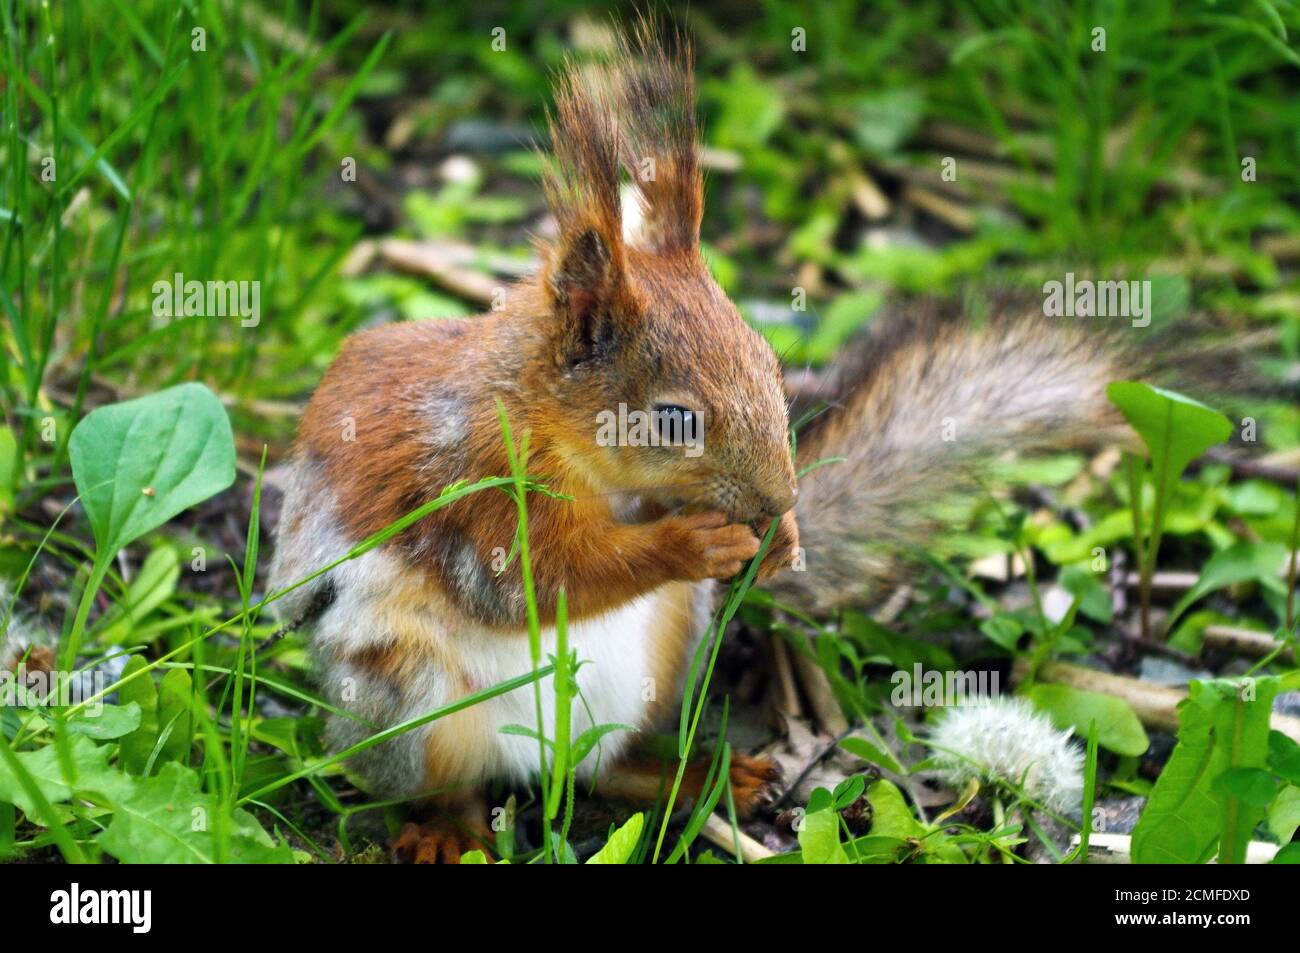 Closeup of a red brown squirrel eating nut during sitting on the green ground Stock Photo